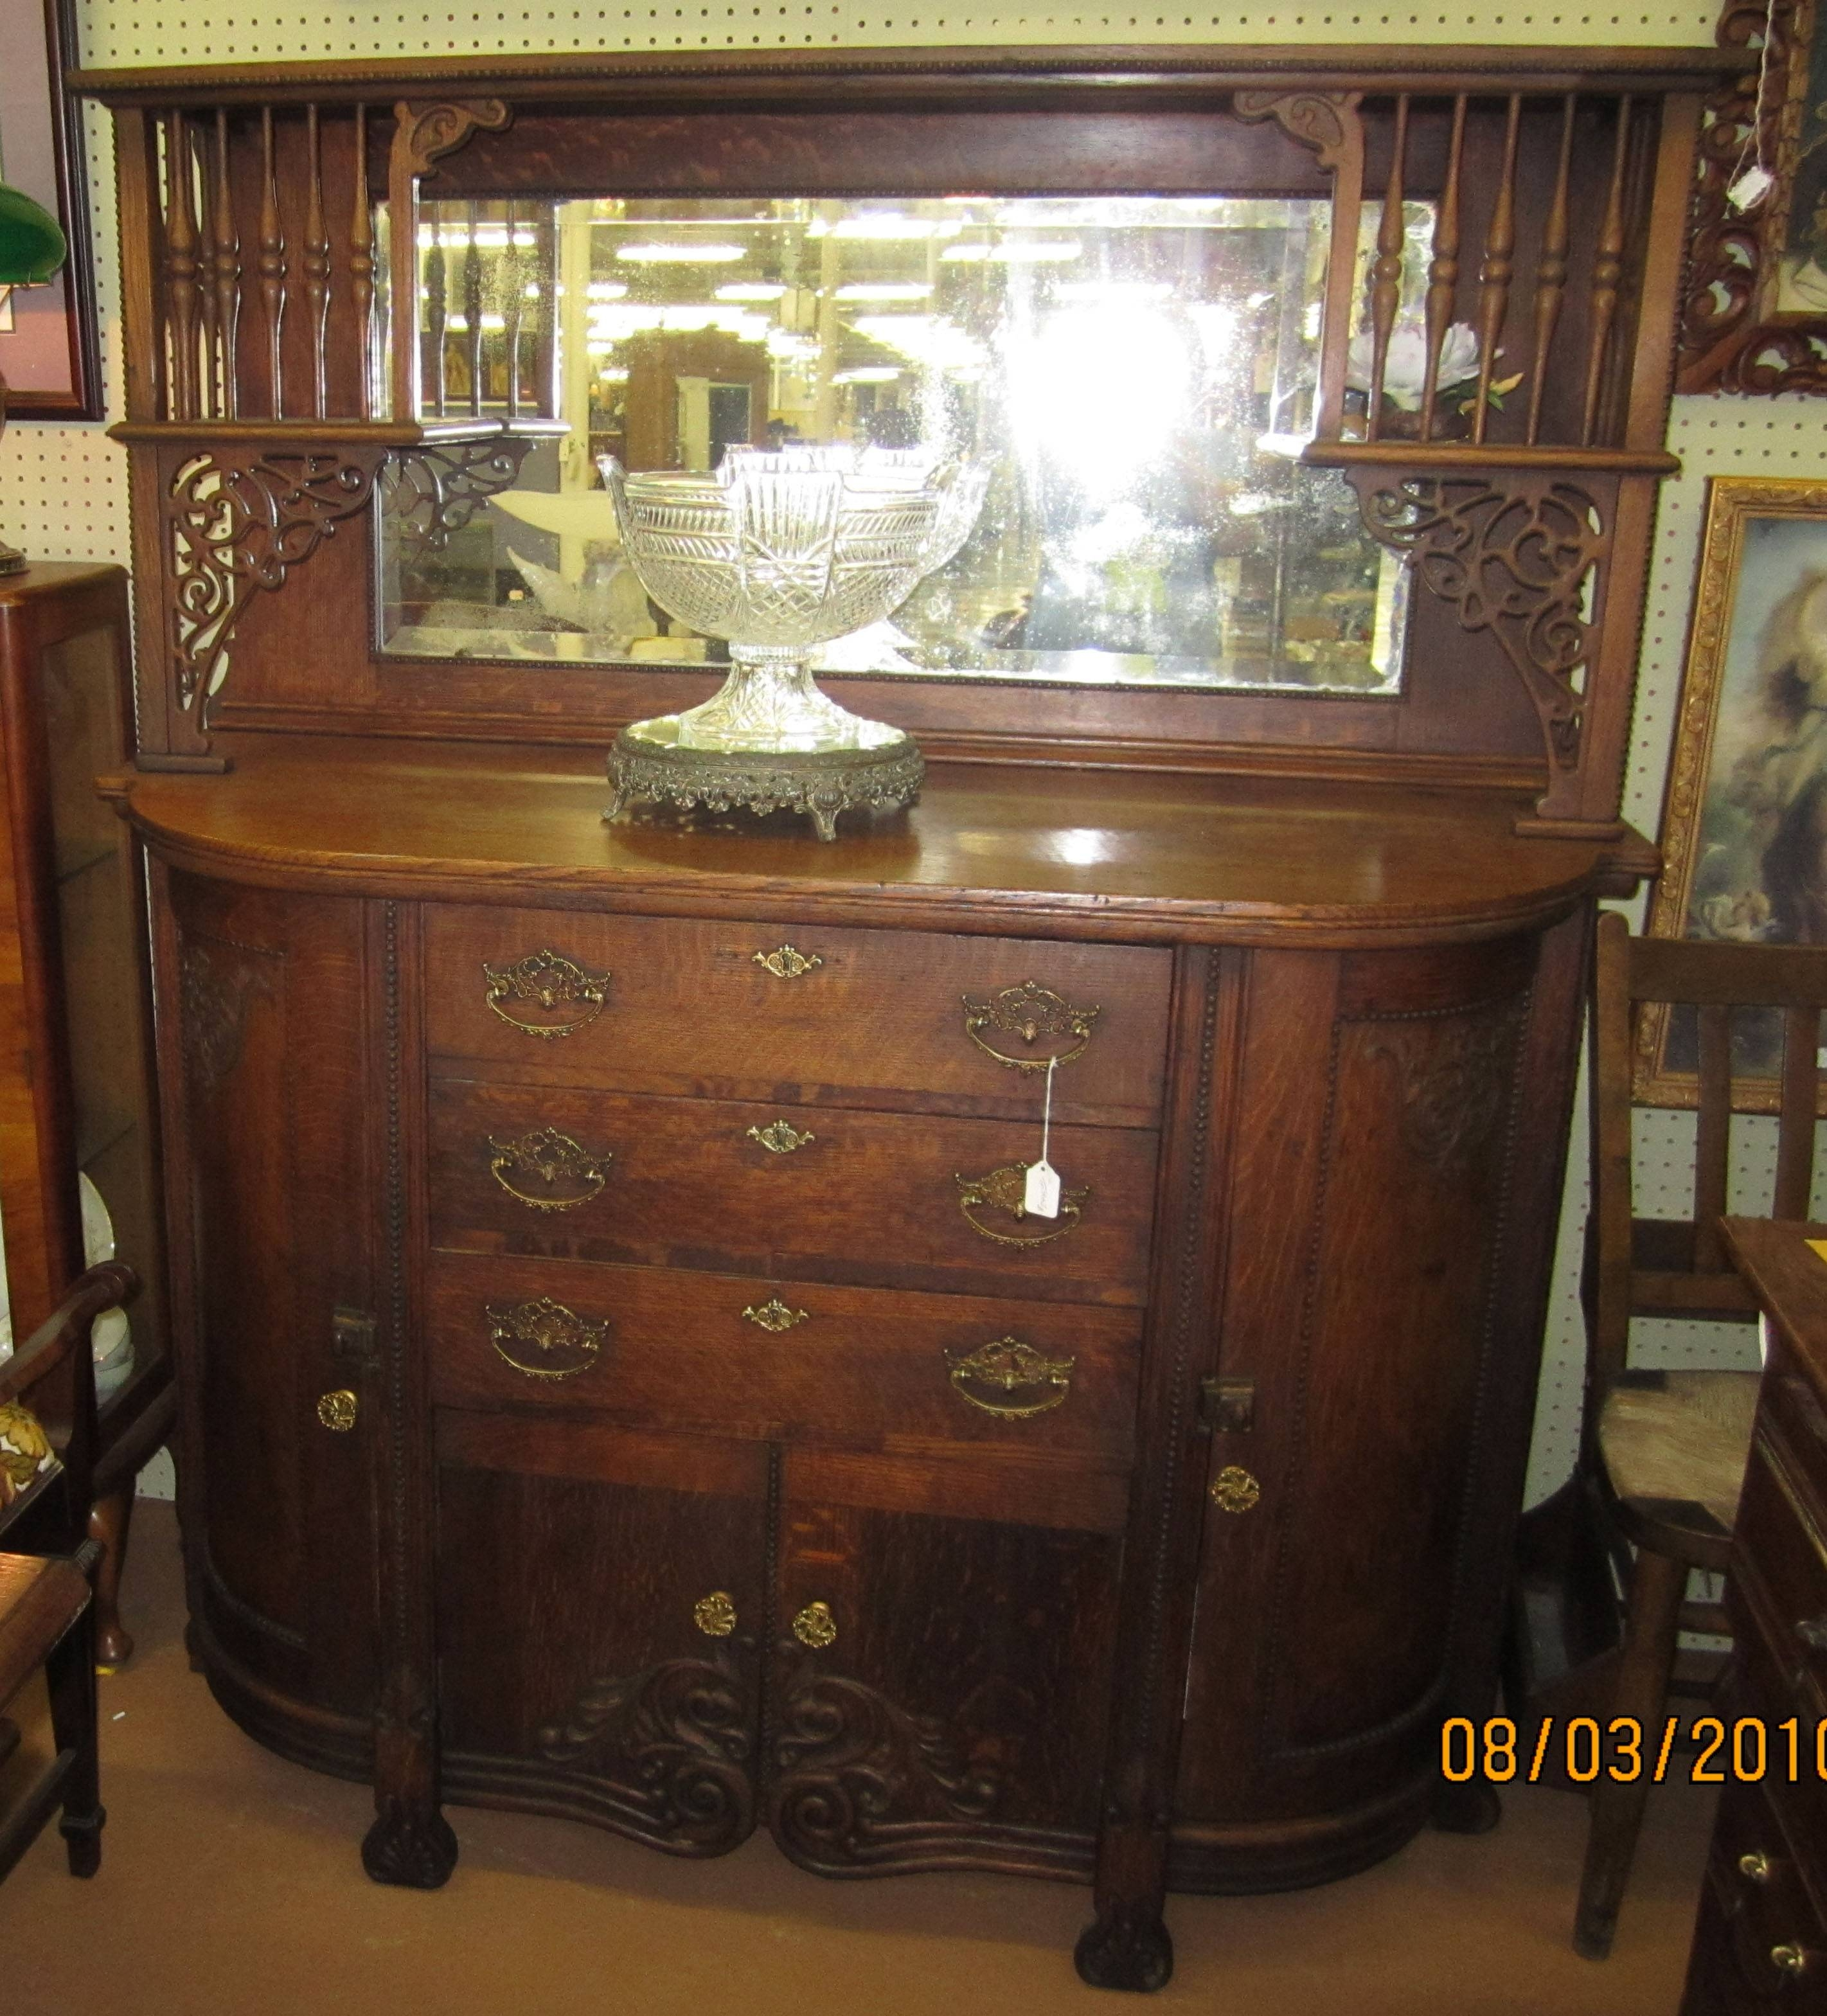 Antiques | Classifieds| Antiques » Antique Furniture » Antique pertaining to Antique Sideboards and Buffets (Image 7 of 15)